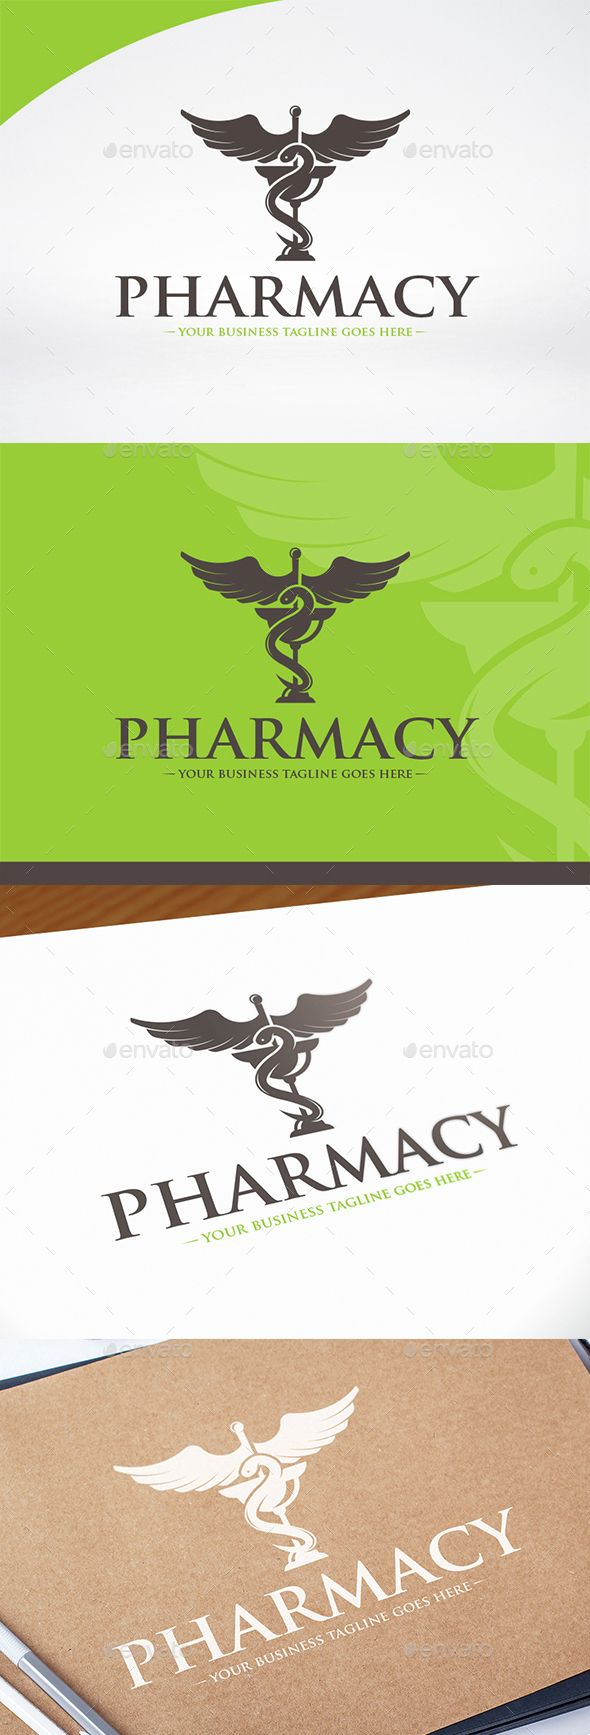 Pharmacy logo template abstract logo designs pinterest logo pharmacy logo design template vector logotype download it here httpgraphicriveritempharmacy logo template 14926200srank129refnexion wajeb Image collections